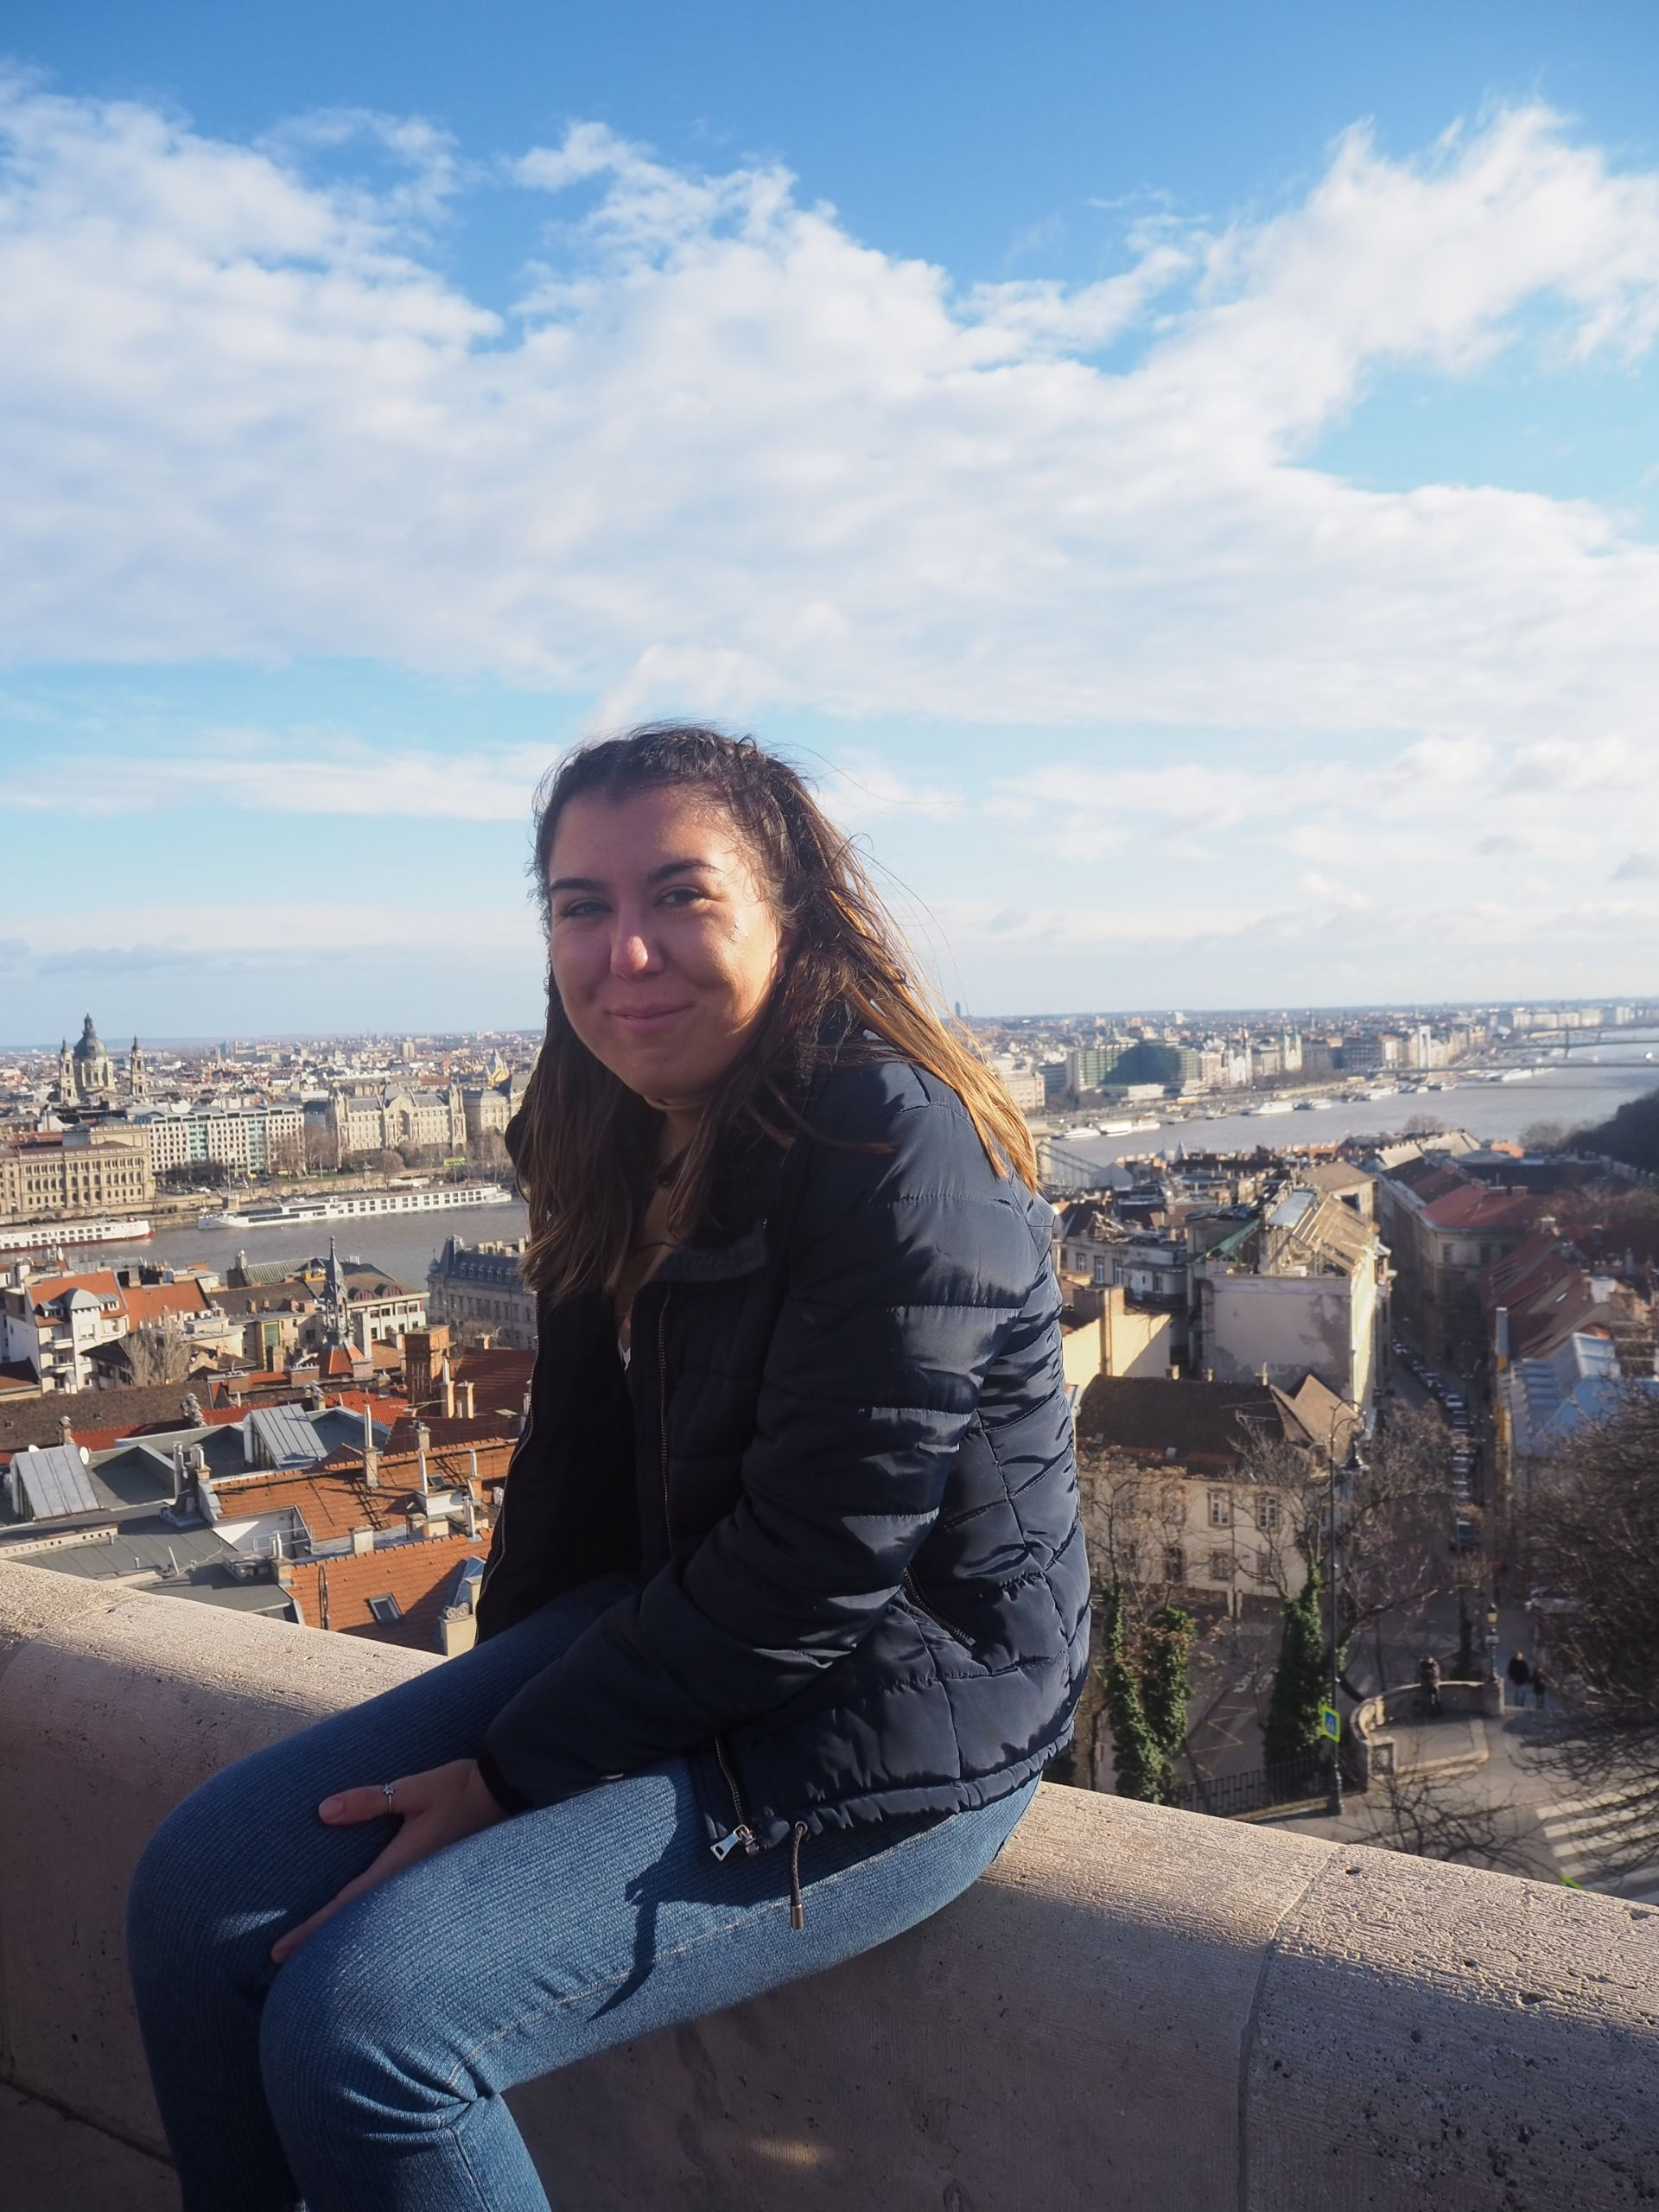 me sat at the top of the fisherman's bastion, with the Budapest cityscape behind me